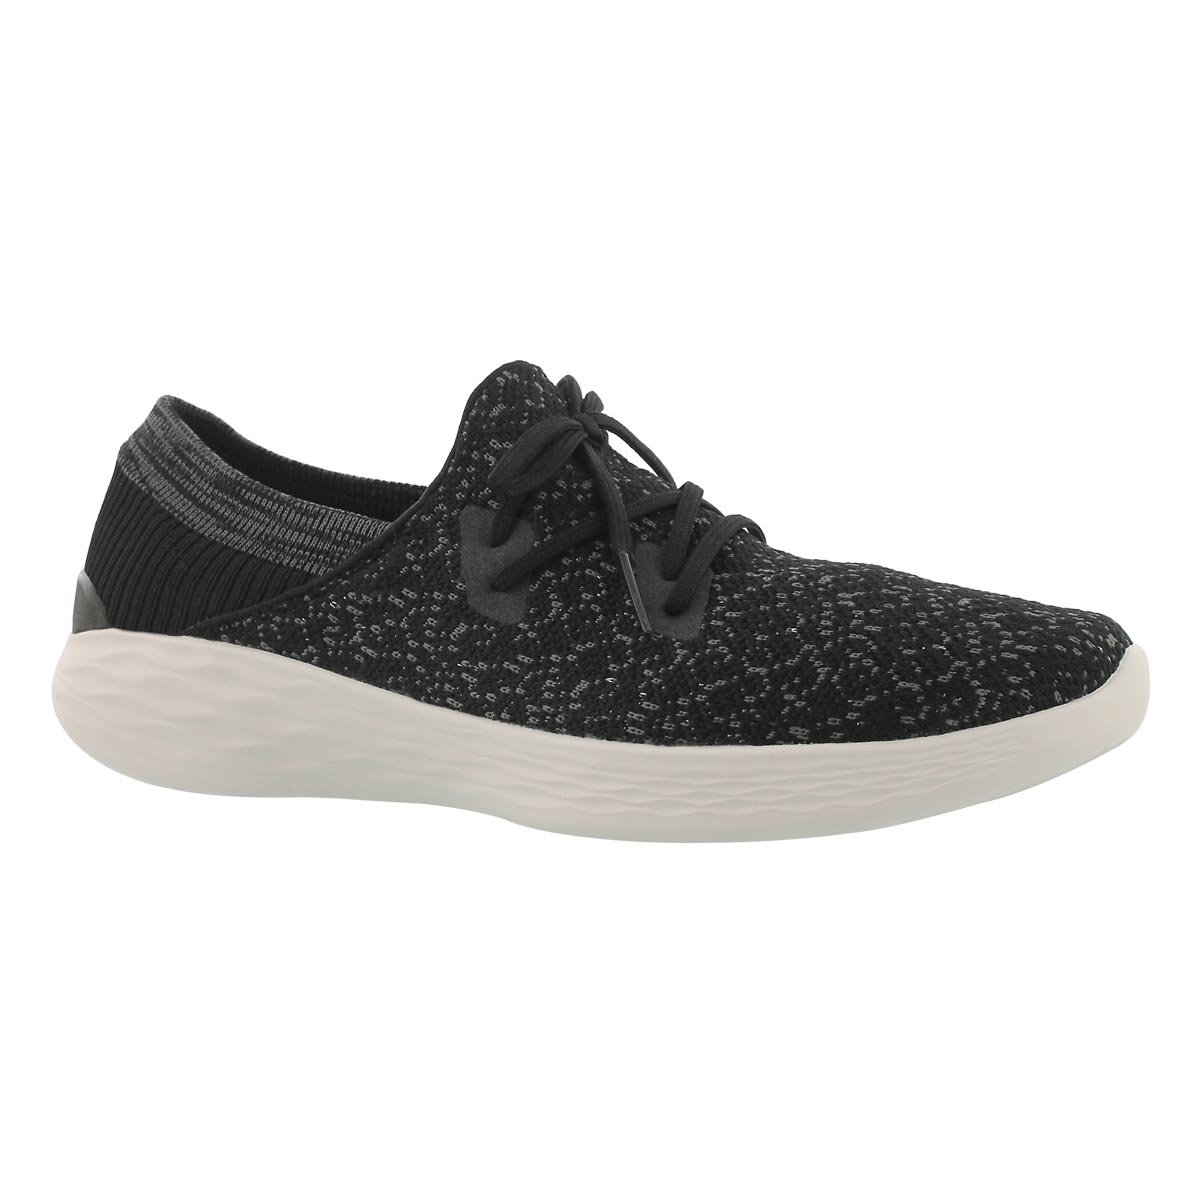 Women's YOU EXHALE black sparkle slip on sneakers